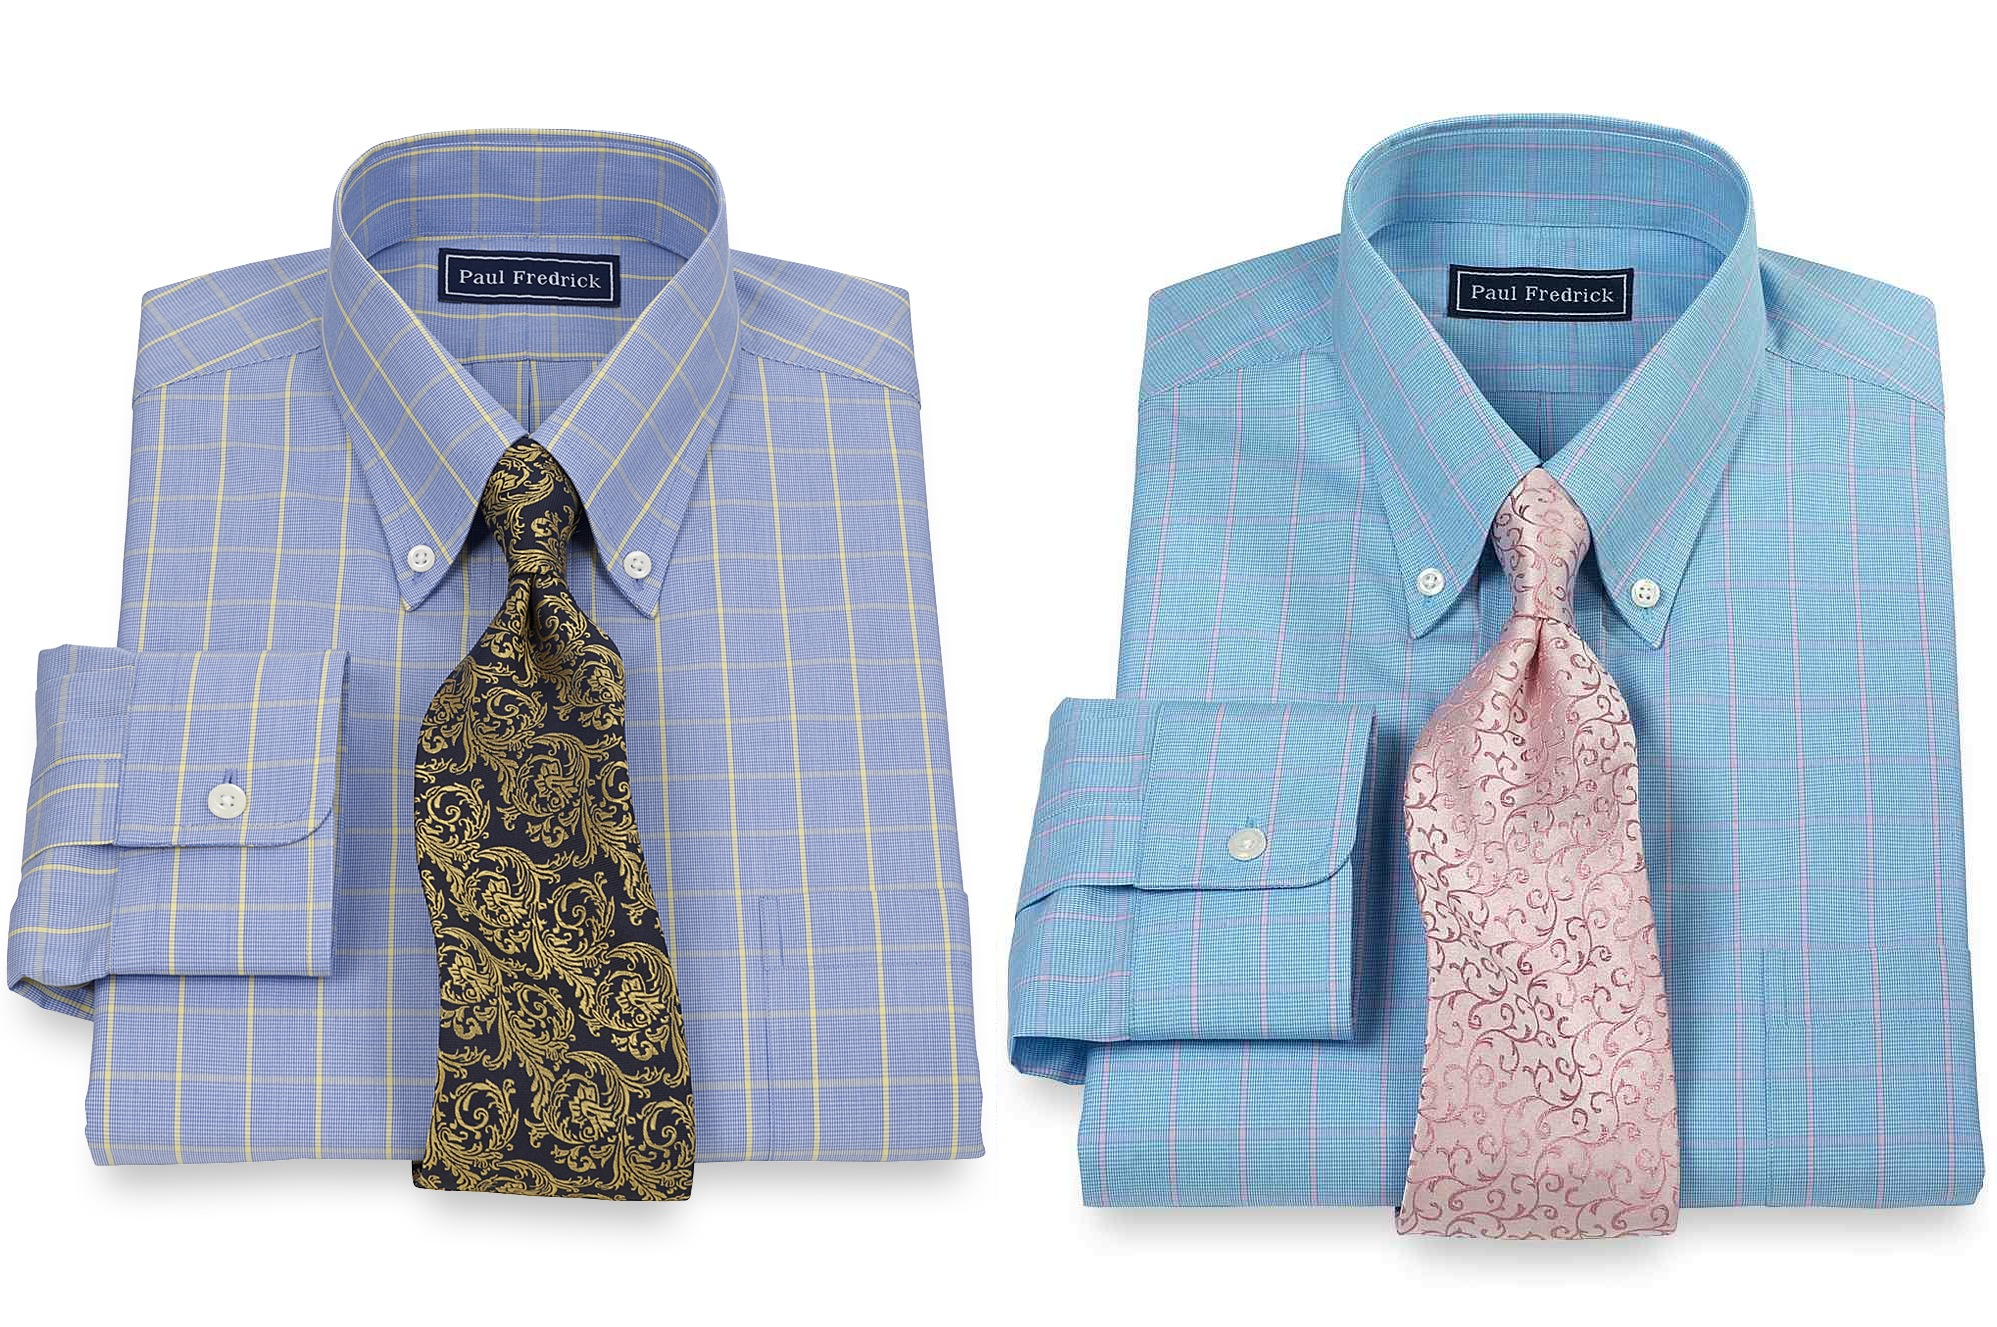 a147ddfd3 Paul Fredrick also offers some eye-grabbing casual shirts. If you re wearing